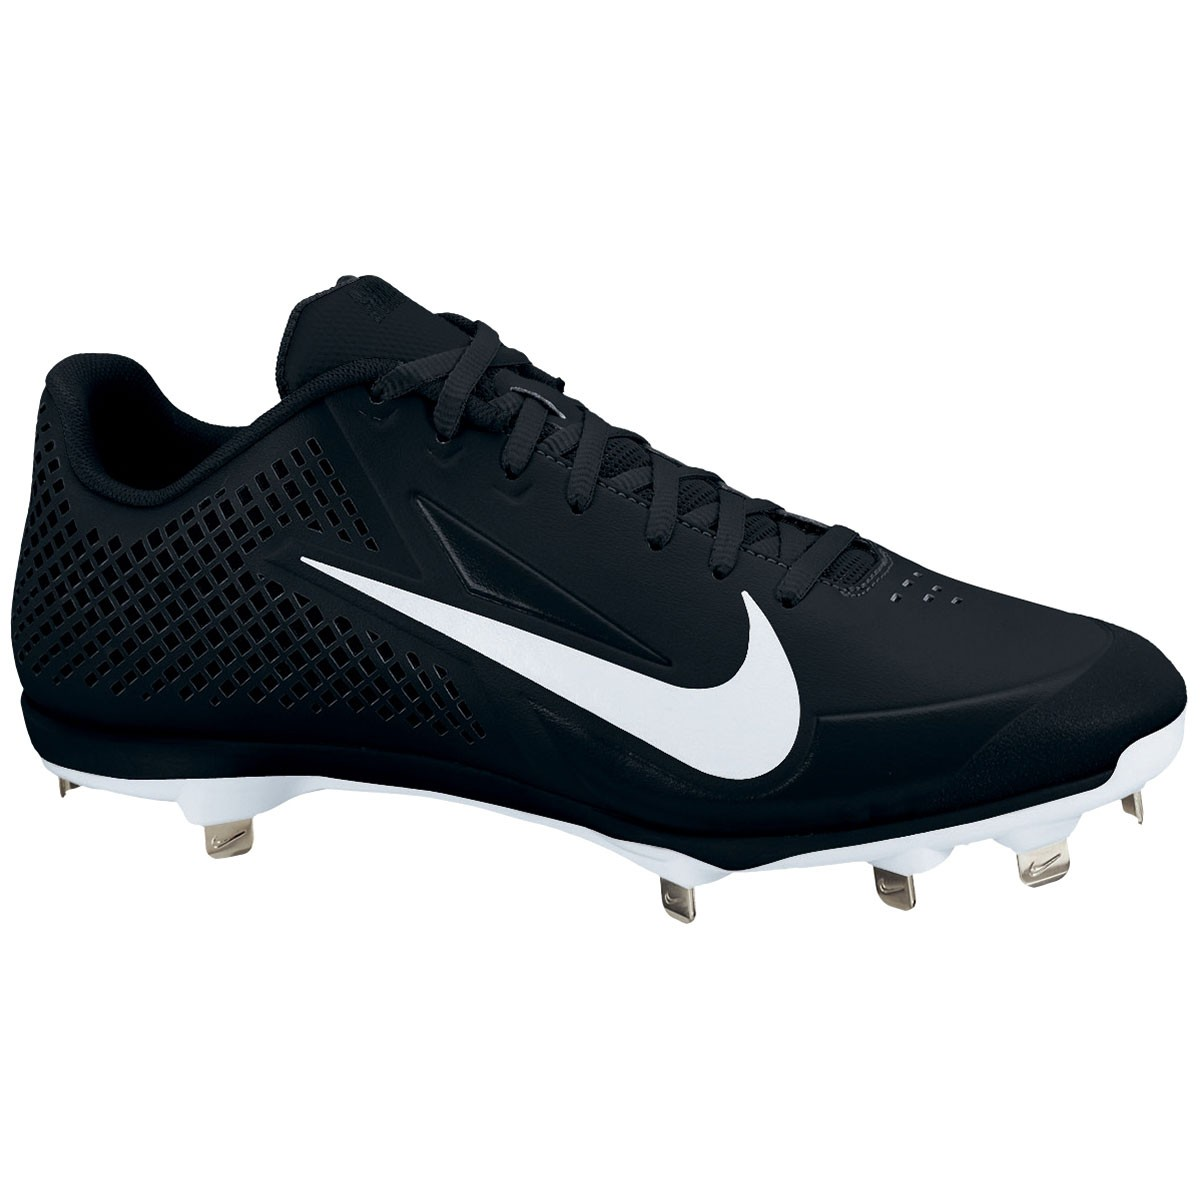 Nike Football Team Shoes